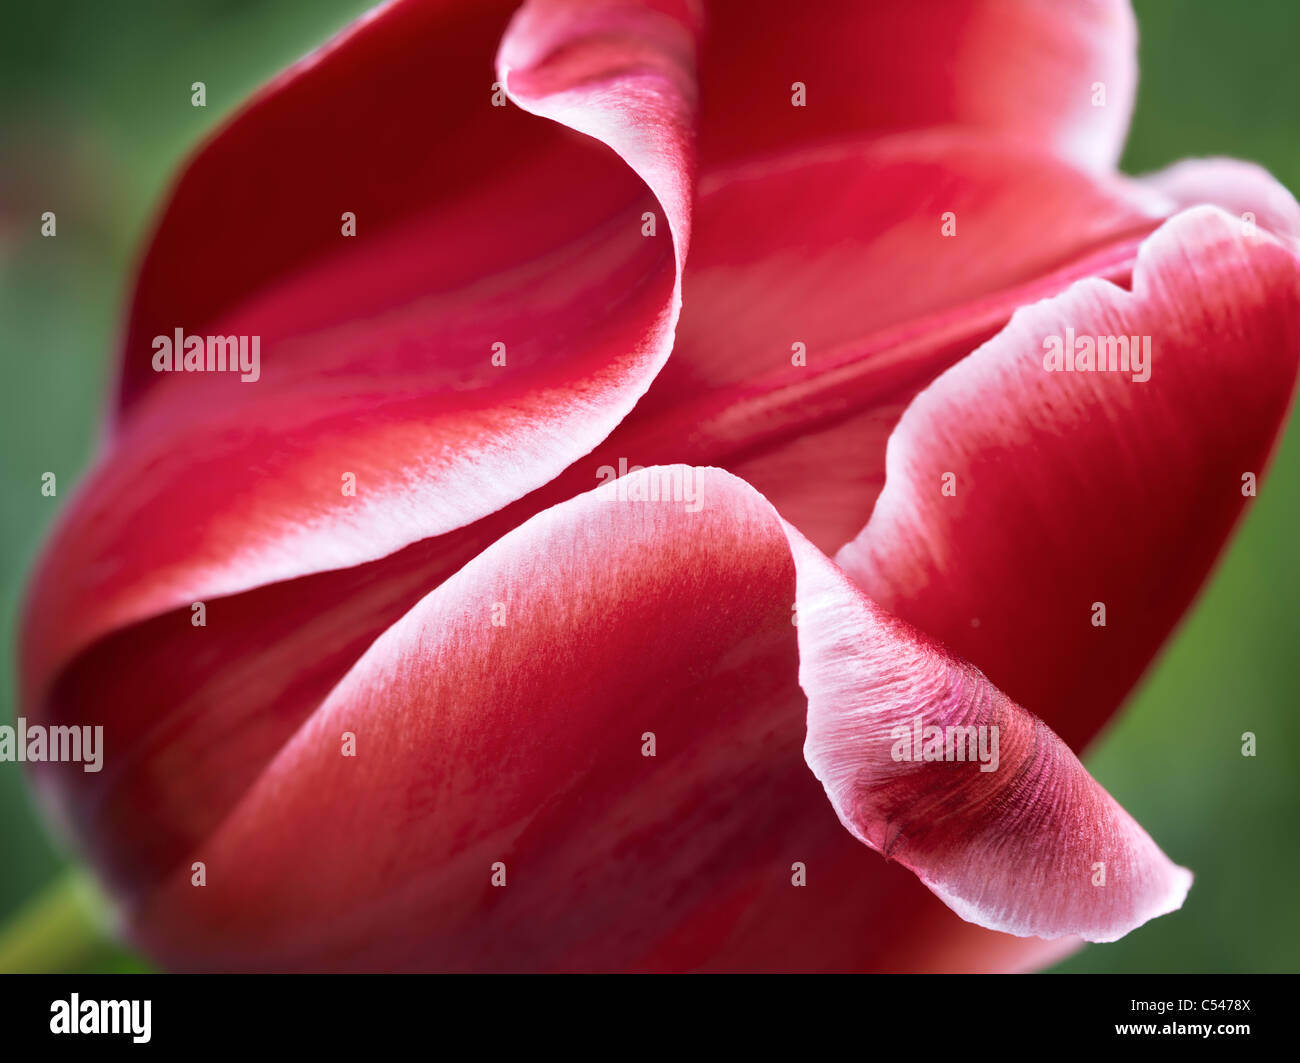 Close up of red tulip flower - Stock Image